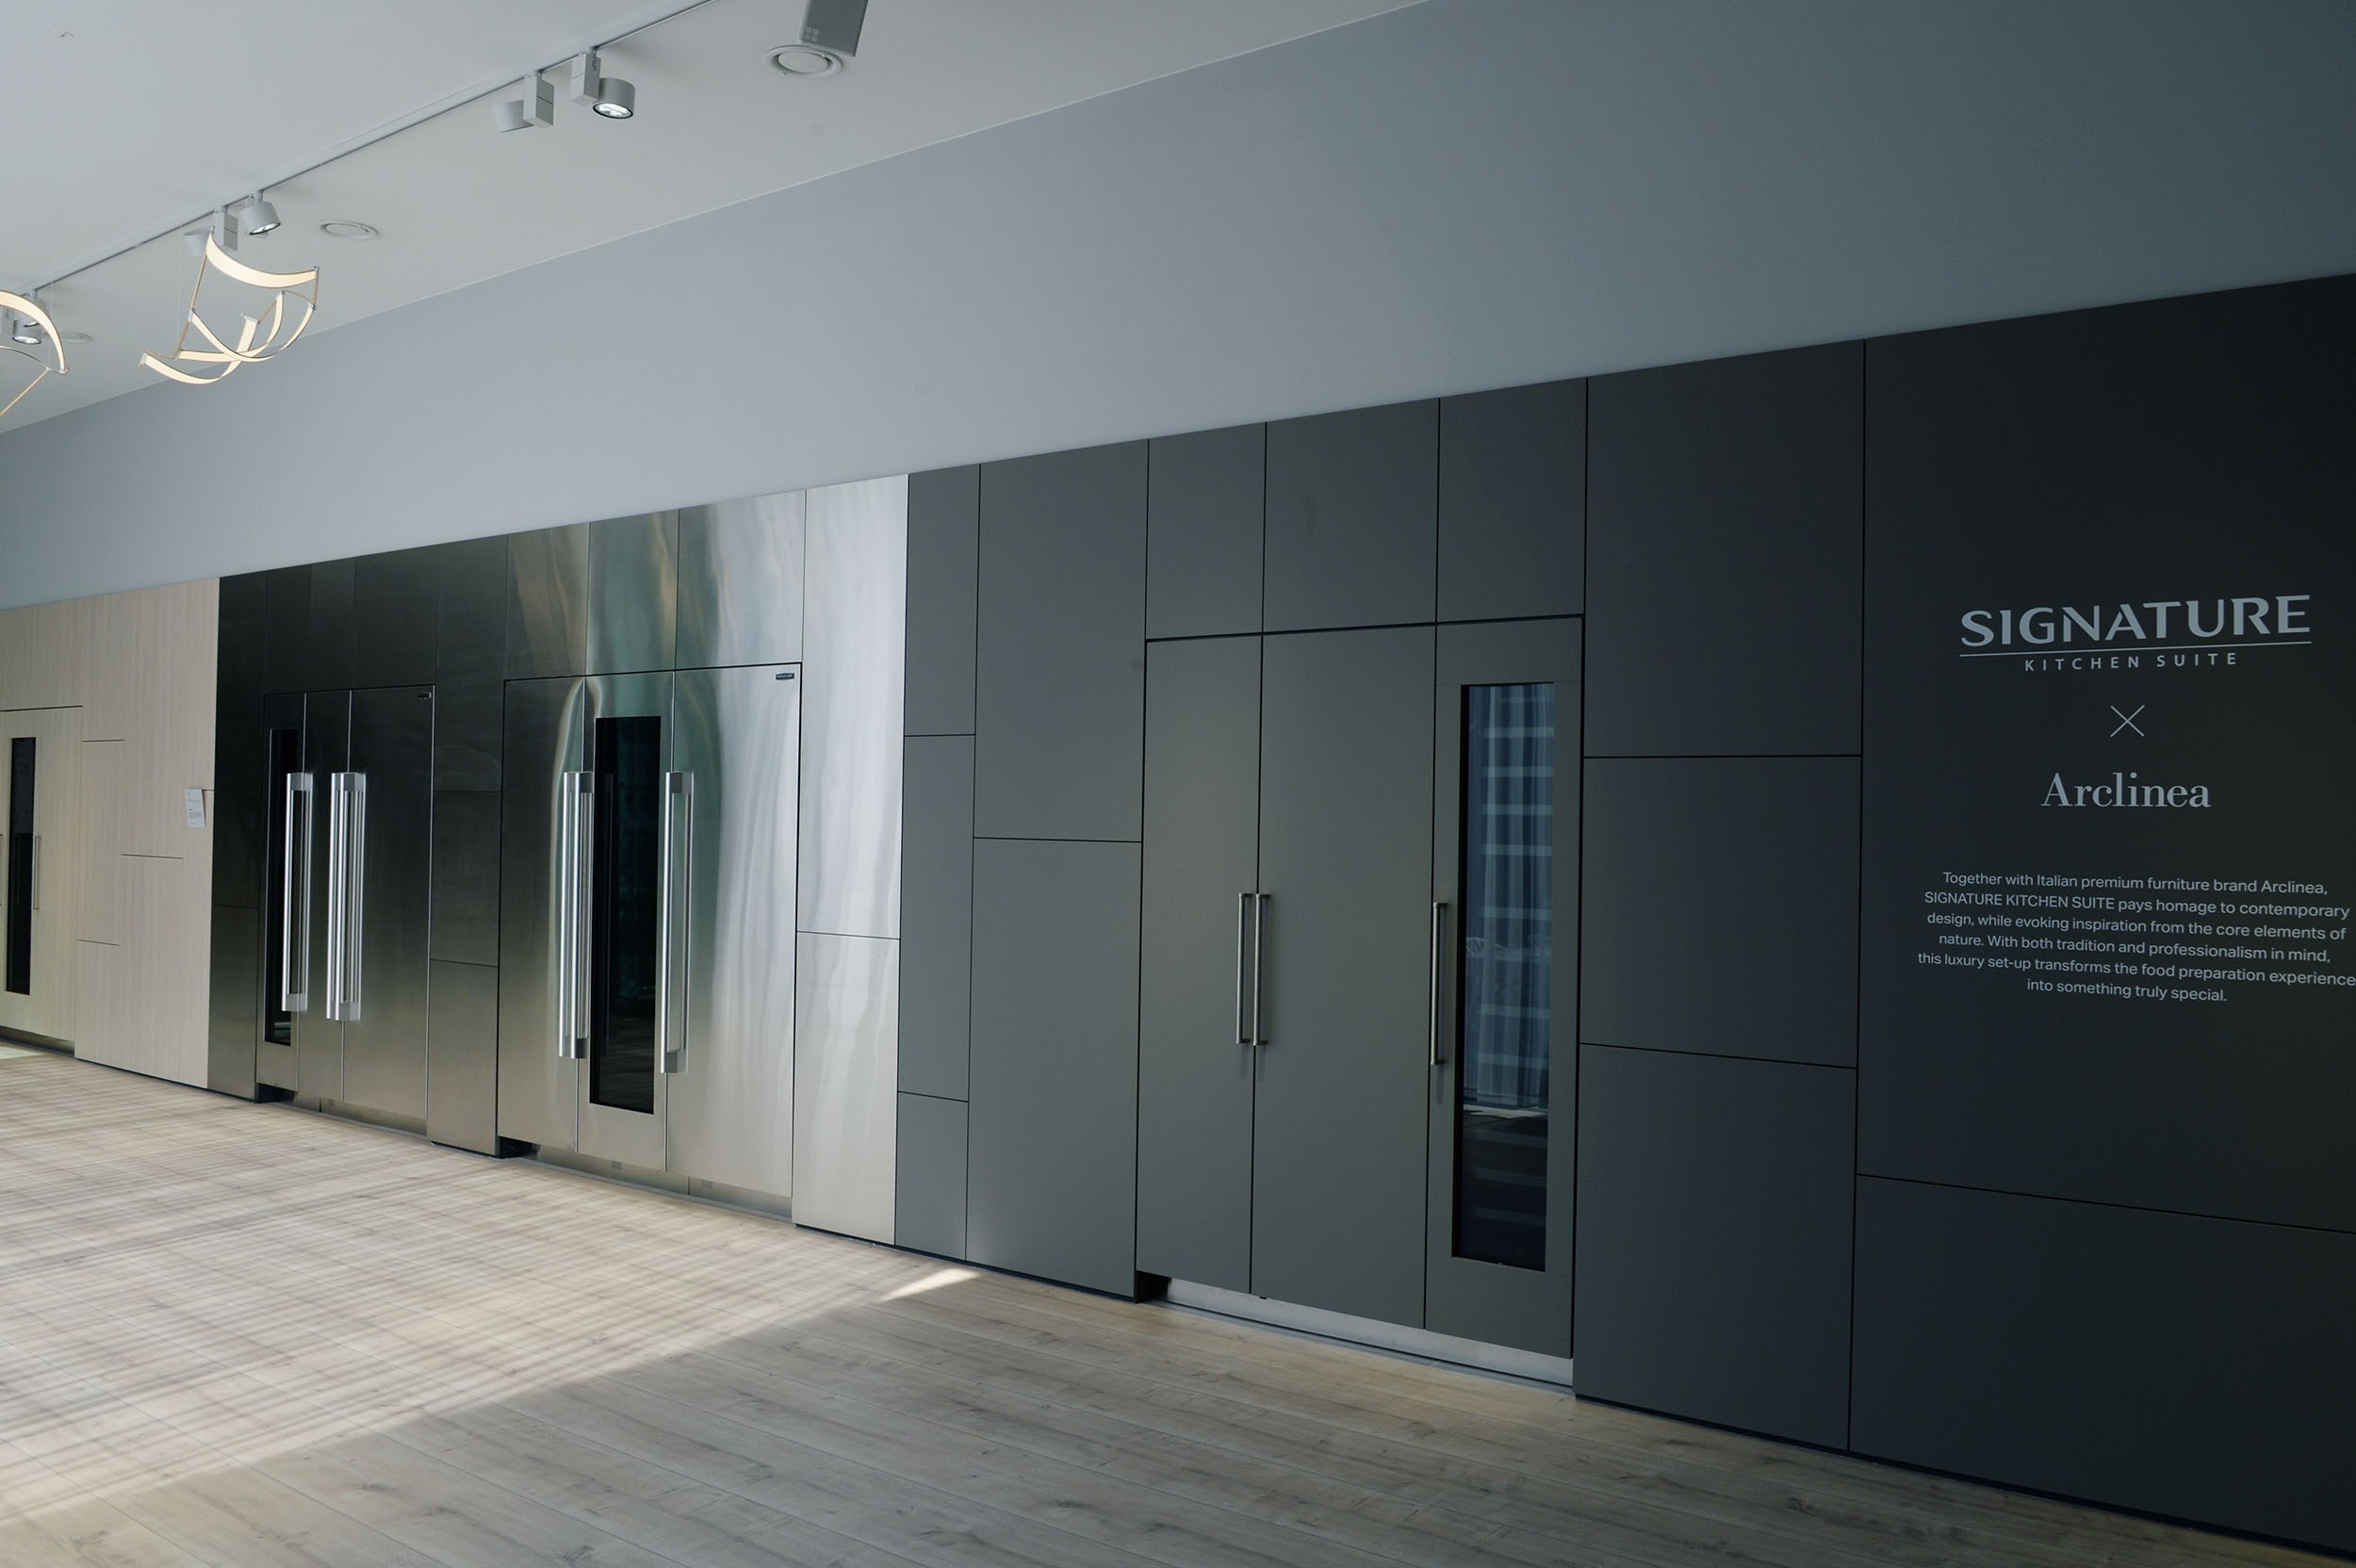 lg kitchen suite where to buy islands brings ultra elegance homes with european debut of signature ifa 2018 villa di 04